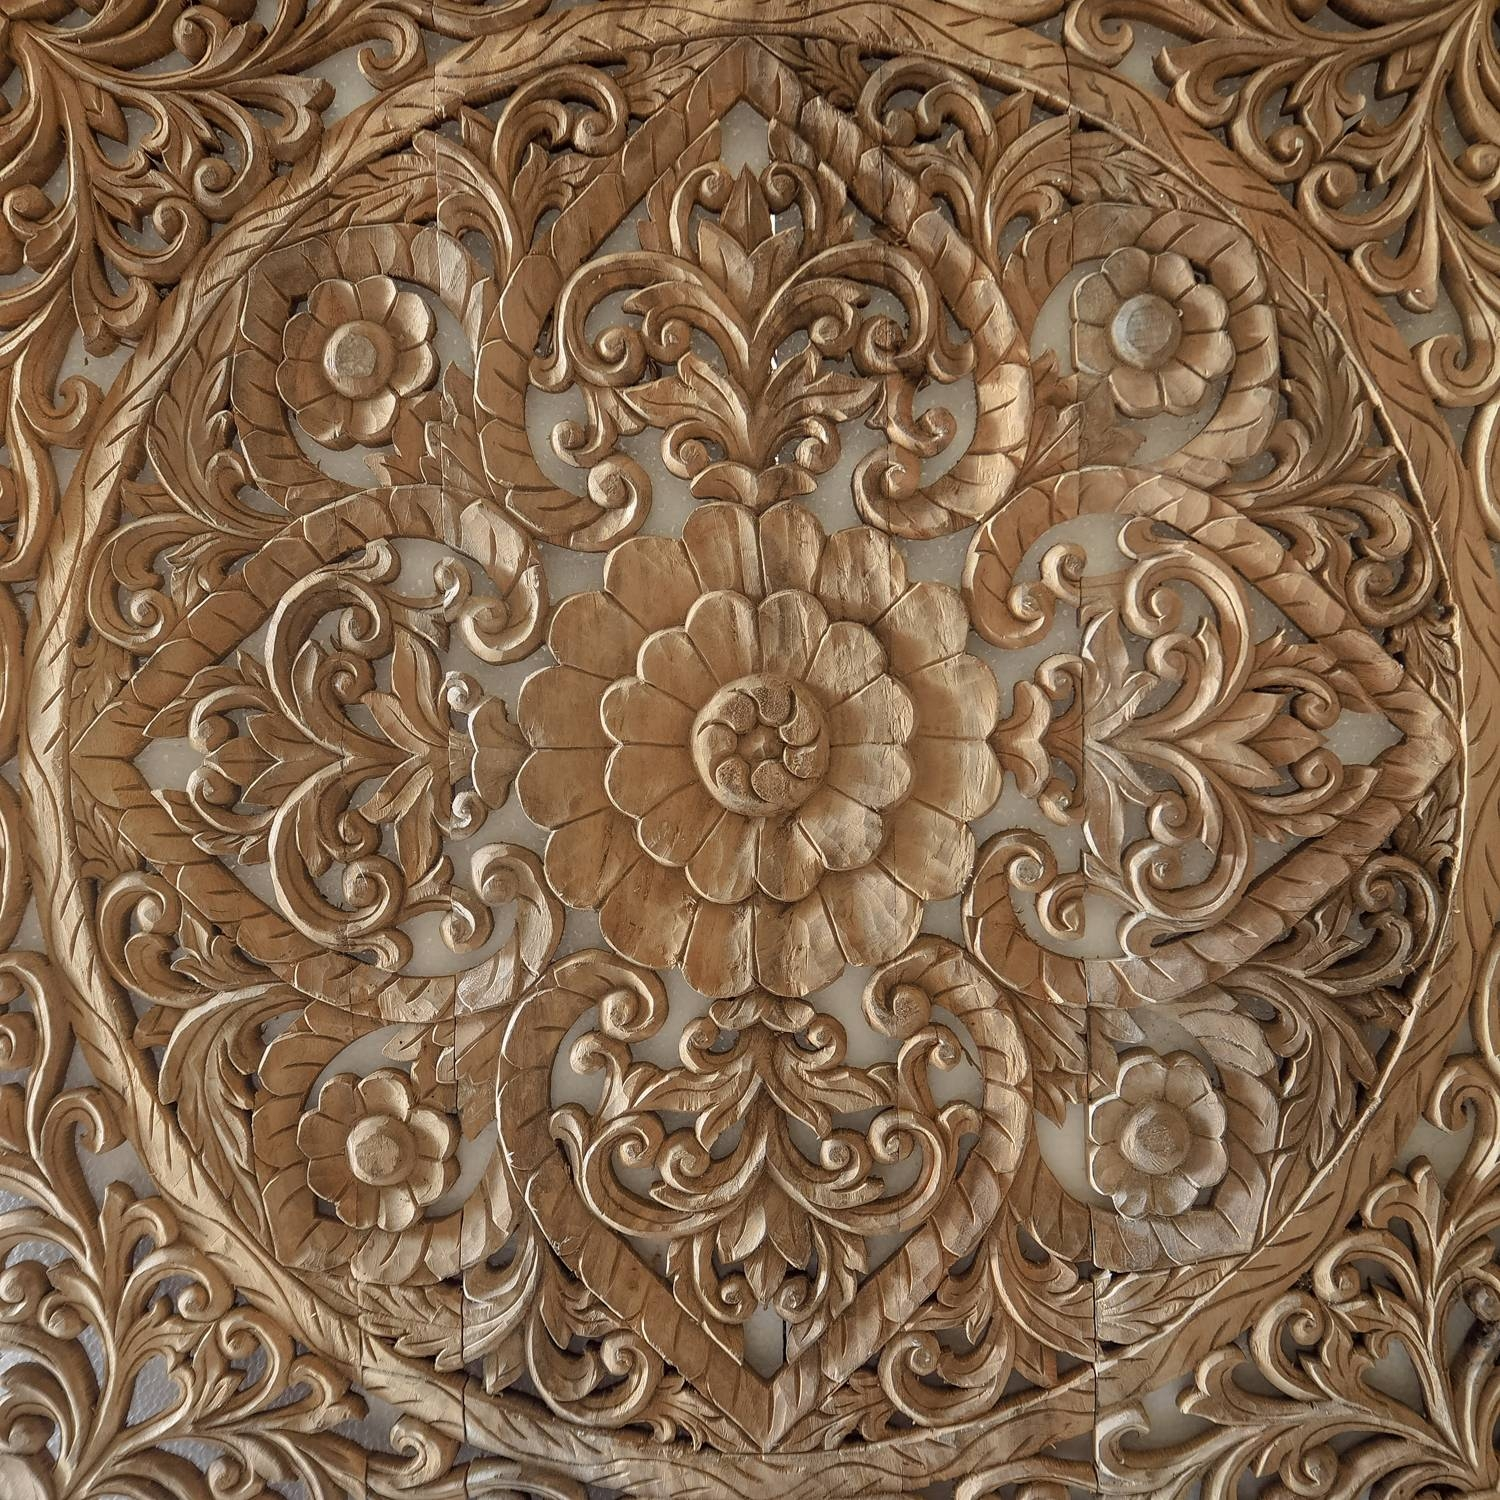 Hand Carved Wall Panel From Bali – Siam Sawadee In 2017 Wood Wall Art Panels (View 8 of 20)